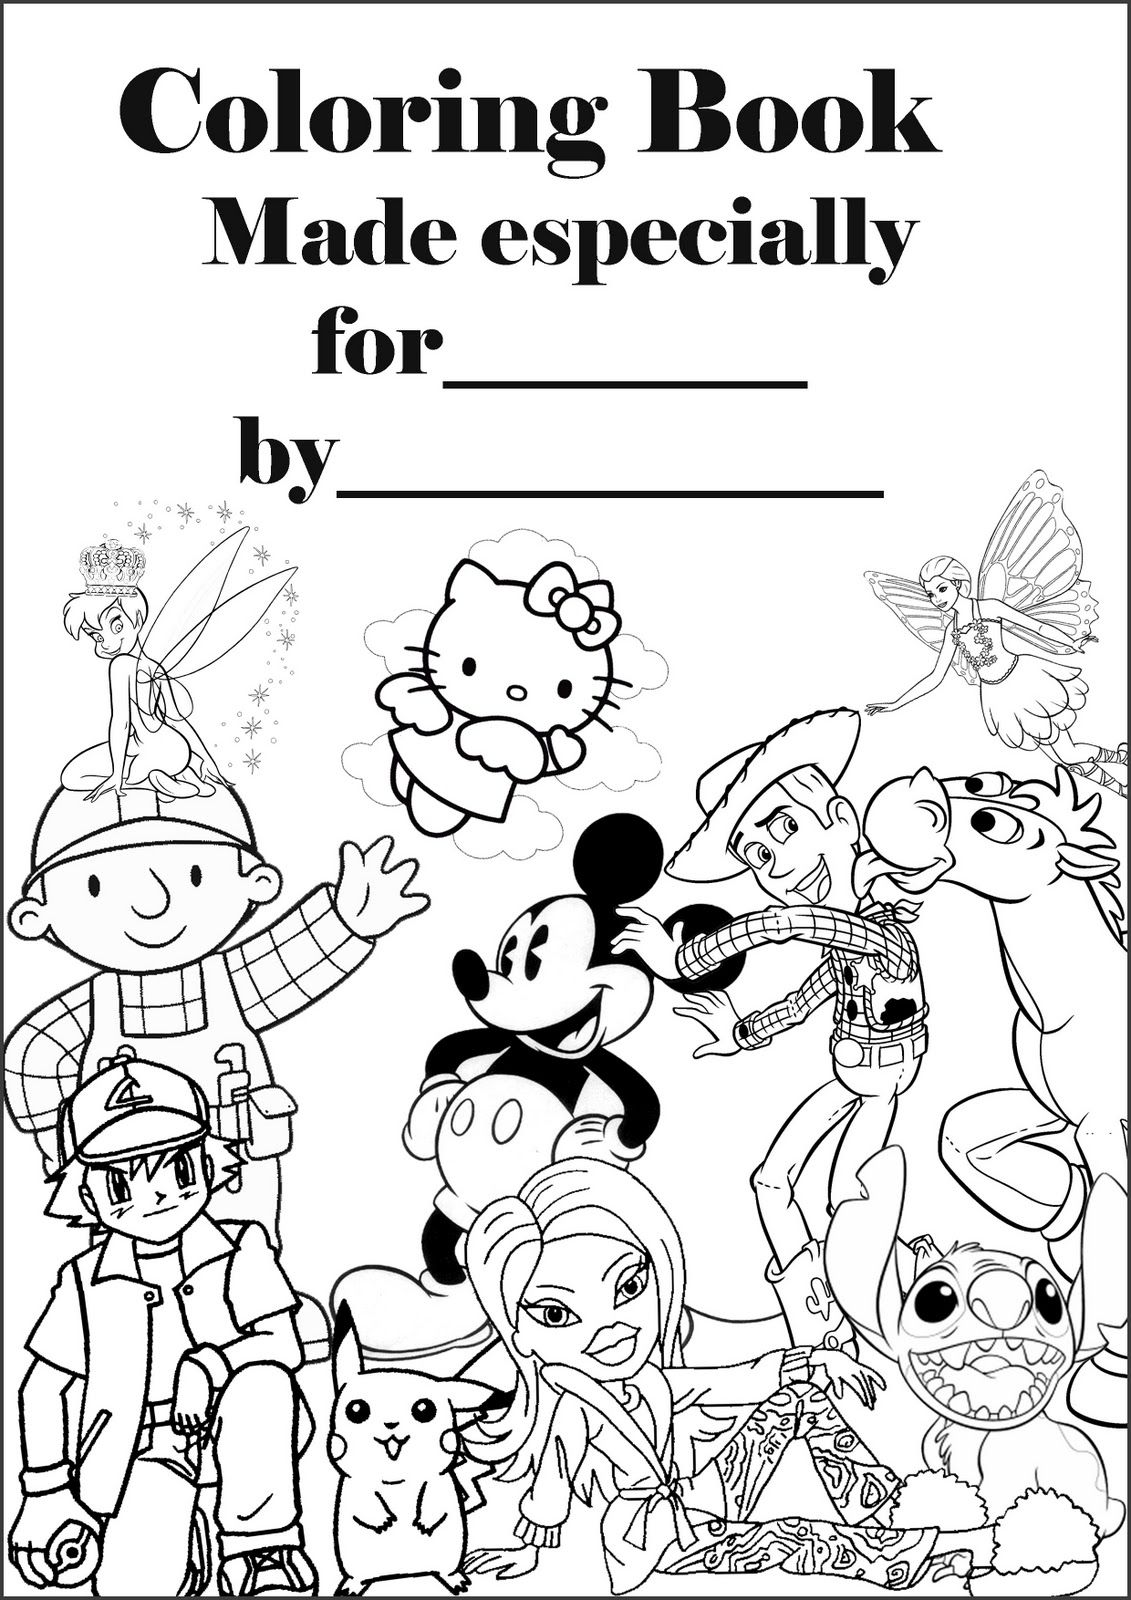 make your own colouring book print a oad of colouring pages from the net then use this sheet as the cover page for your very own book great for party